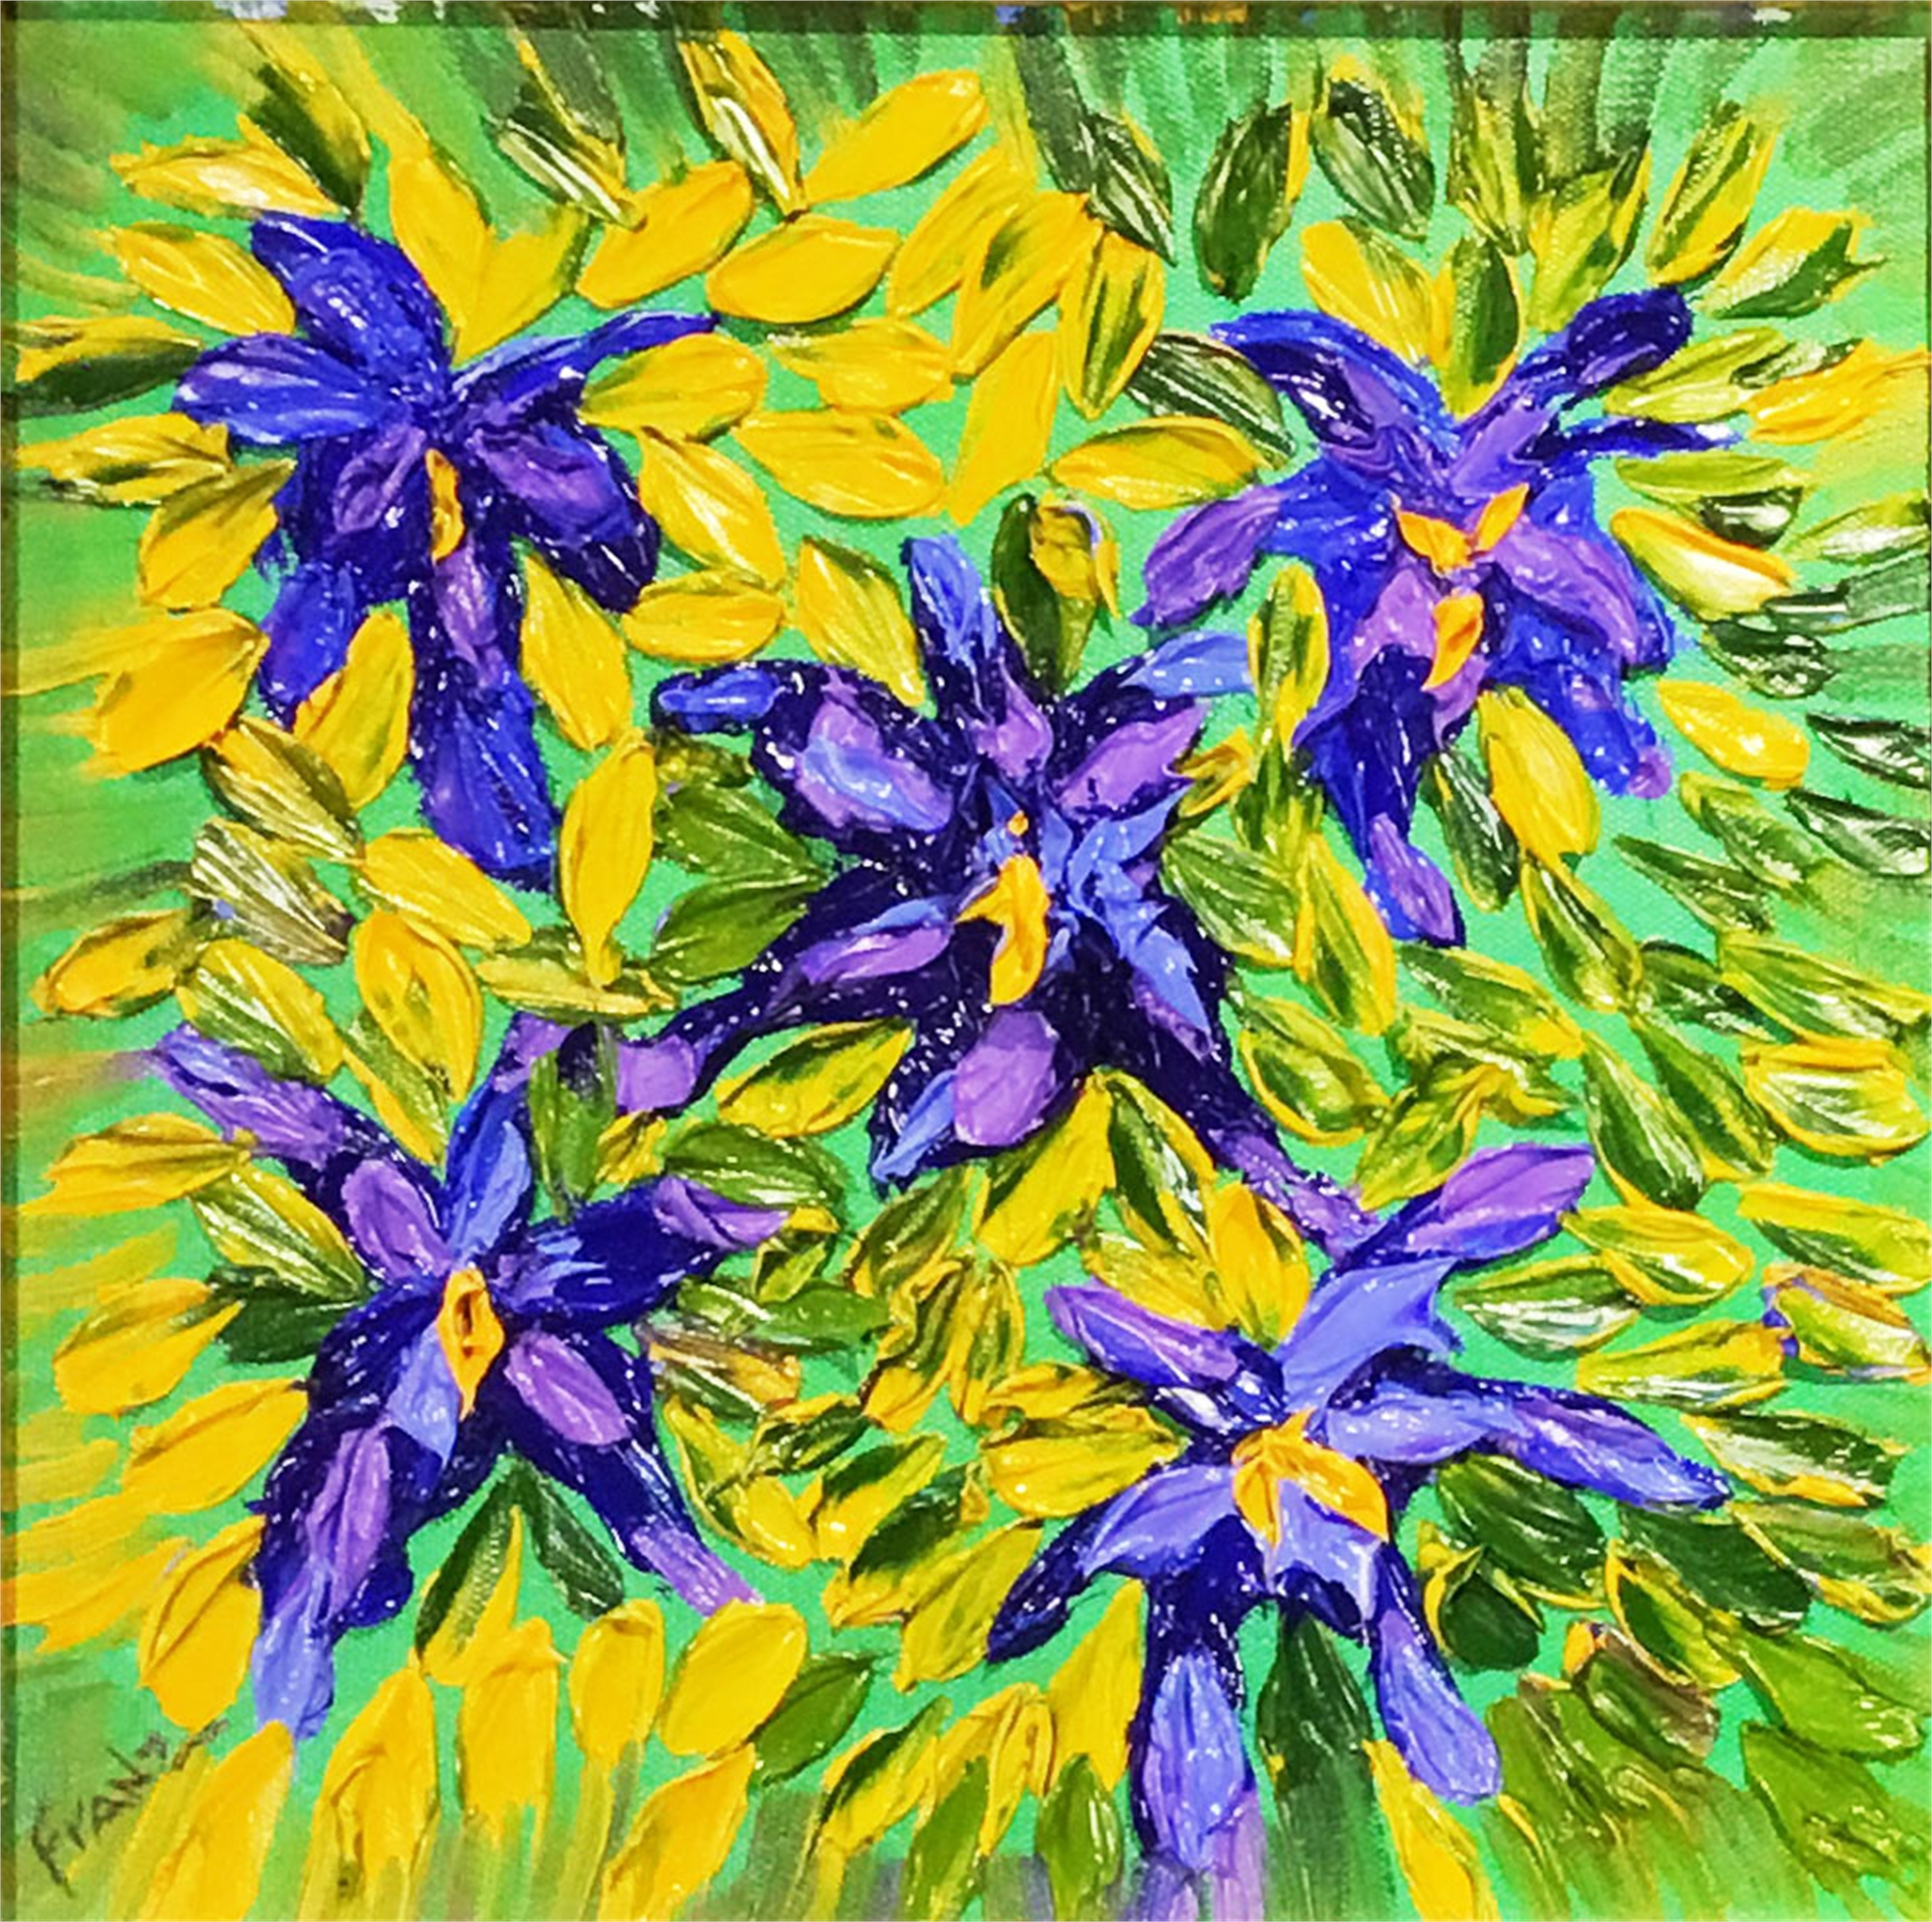 Blue Iris Impasto Oil Painting by Franz Fox